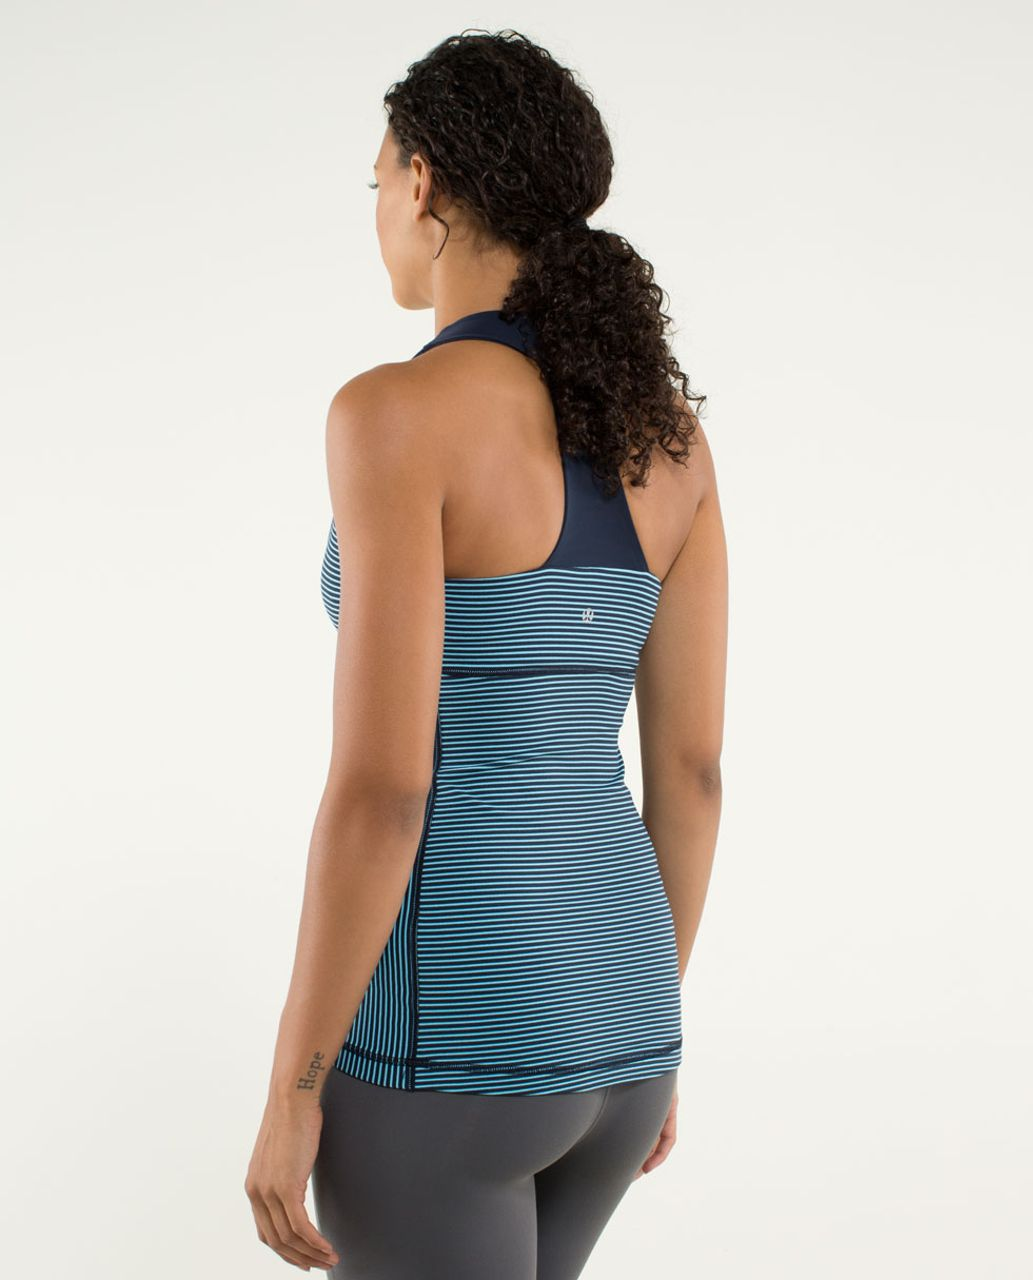 Lululemon Scoop Neck Tank *Luon Light - Hyper Stripe Blue Moon / Inkwell